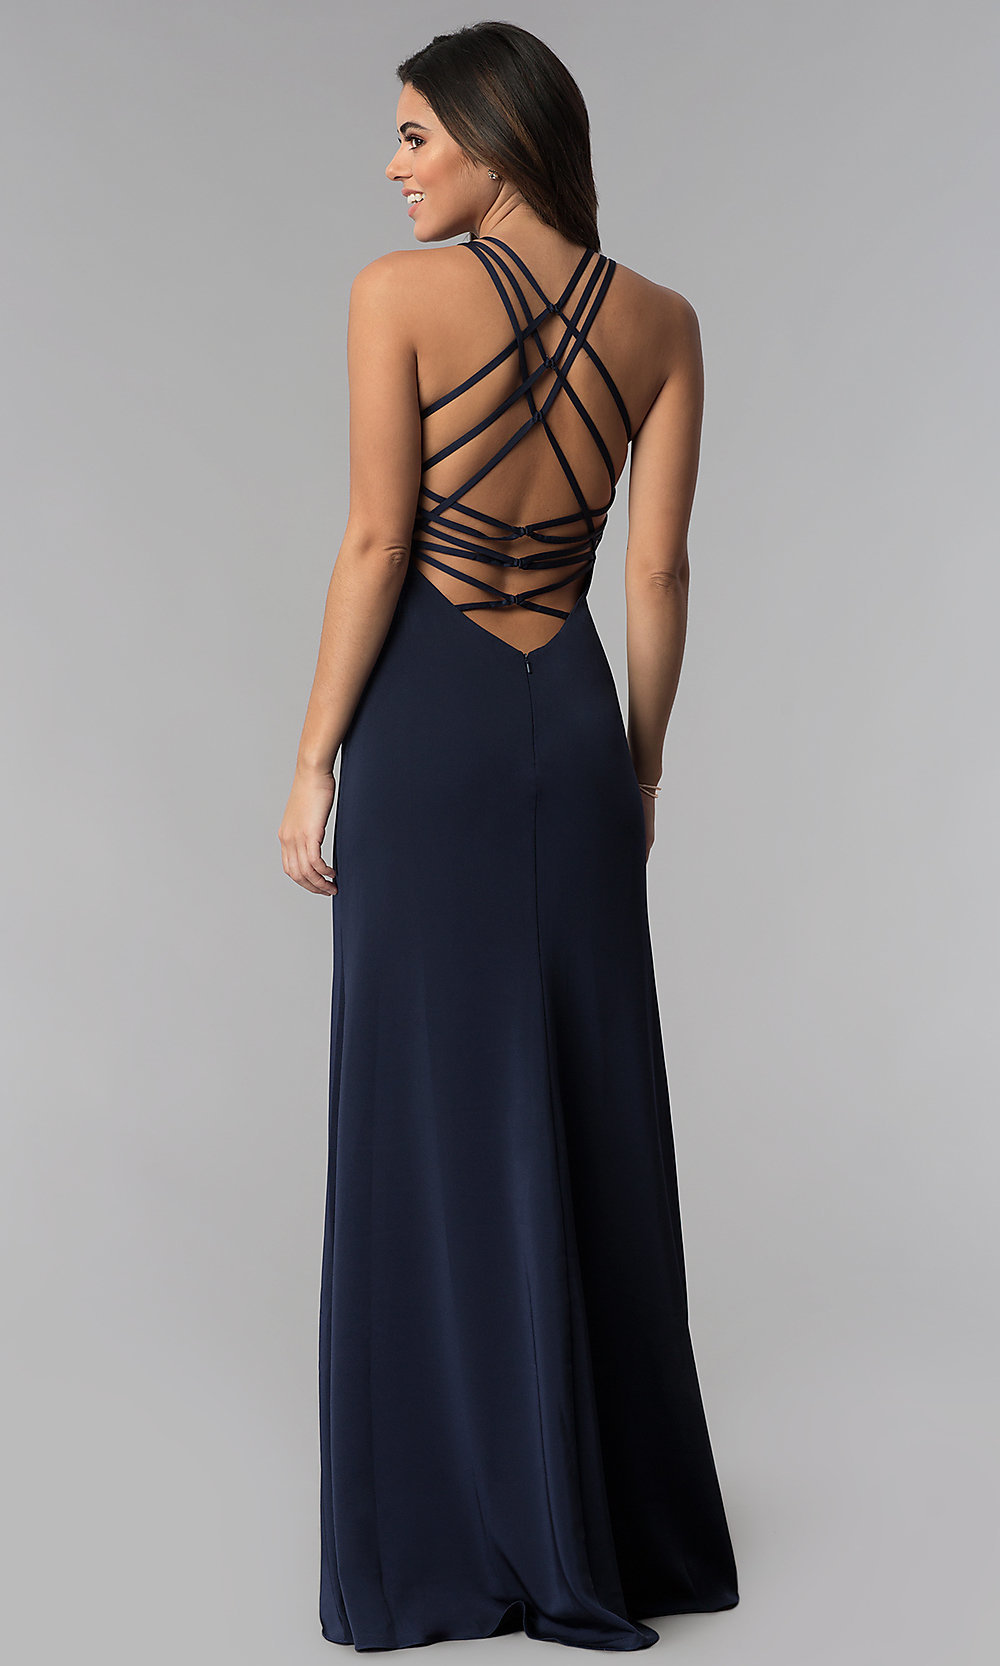 Strappy Back Long Prom Dresses